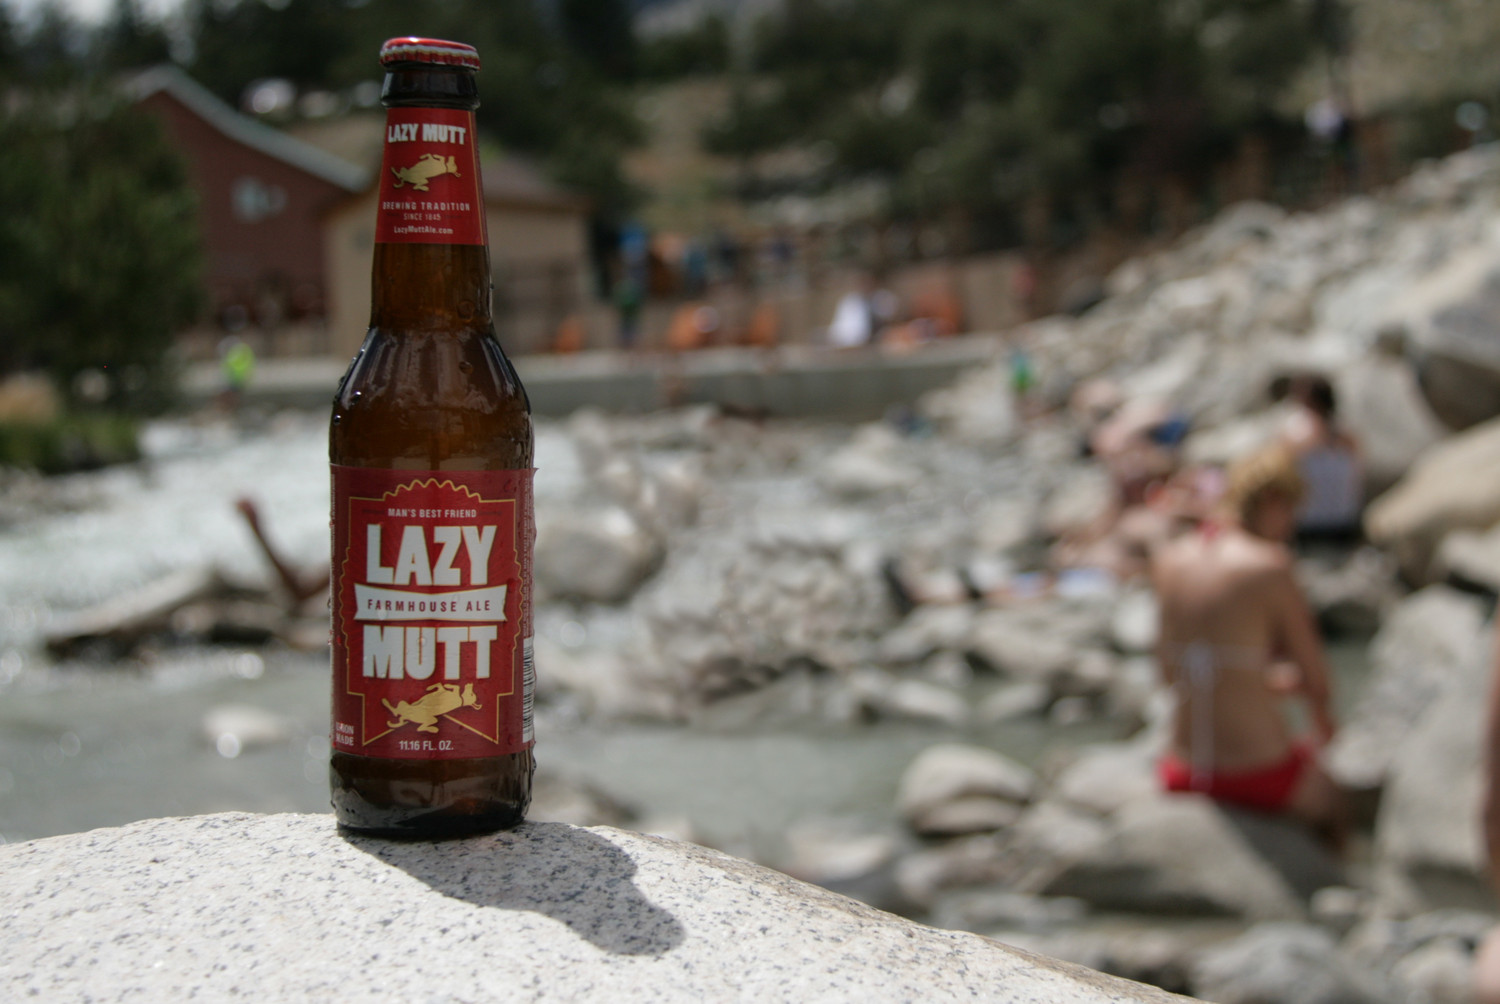 Be lazy this summer with a perfect summer farmhouse ale seasonal beer.